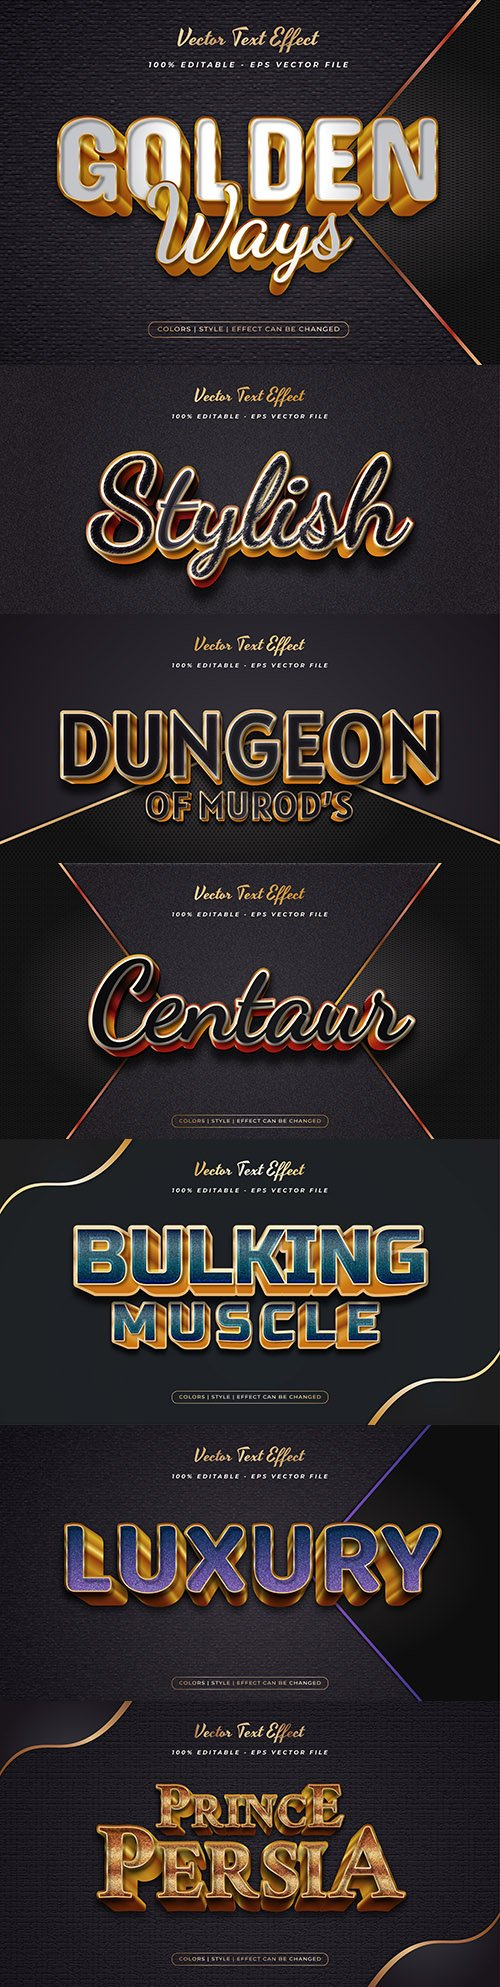 Elegant text in gold style with texture effect